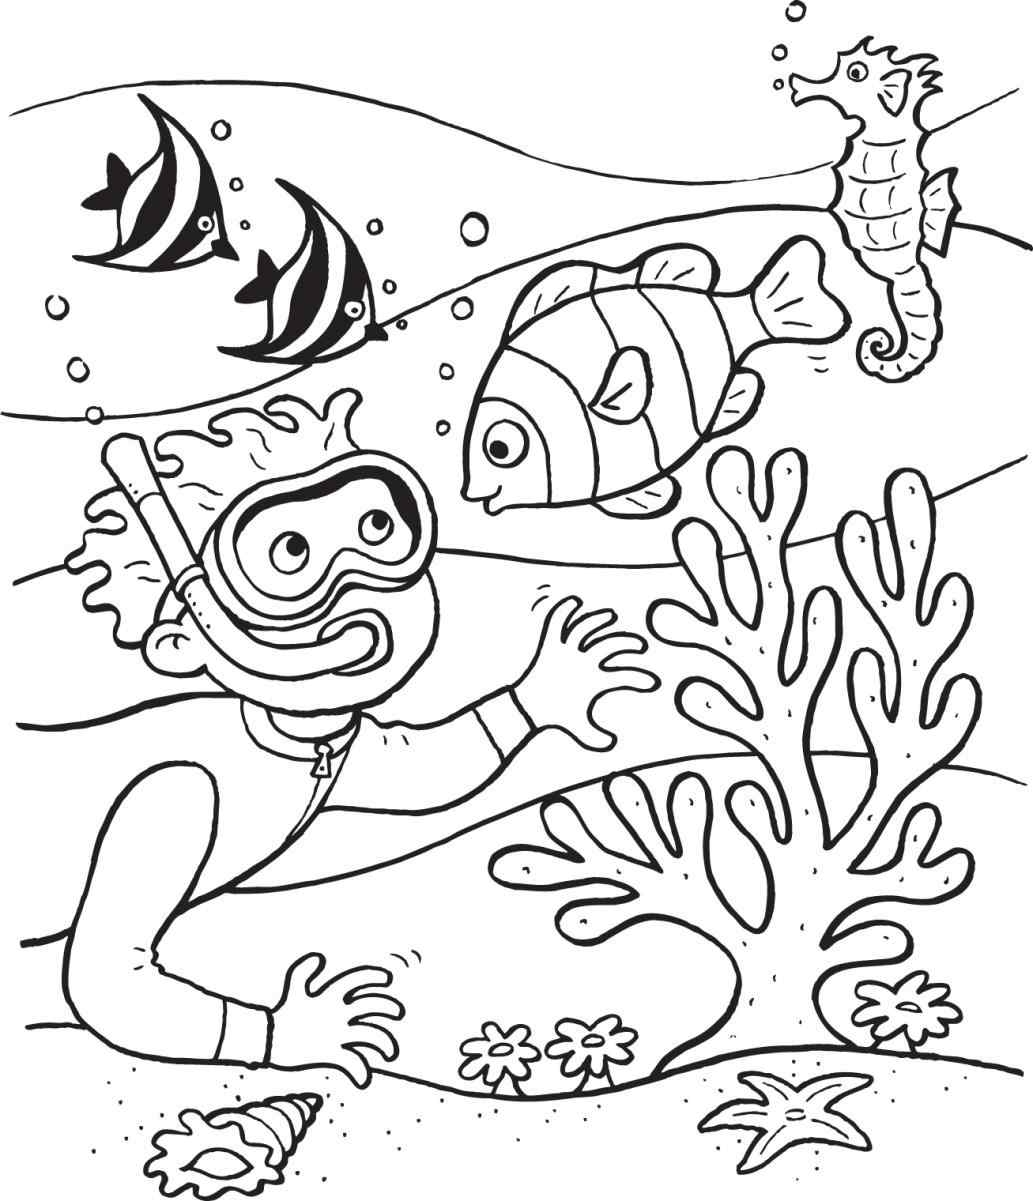 1033x1201 Elegant Nba Coloring Pages Printable Ultra Coloring Page